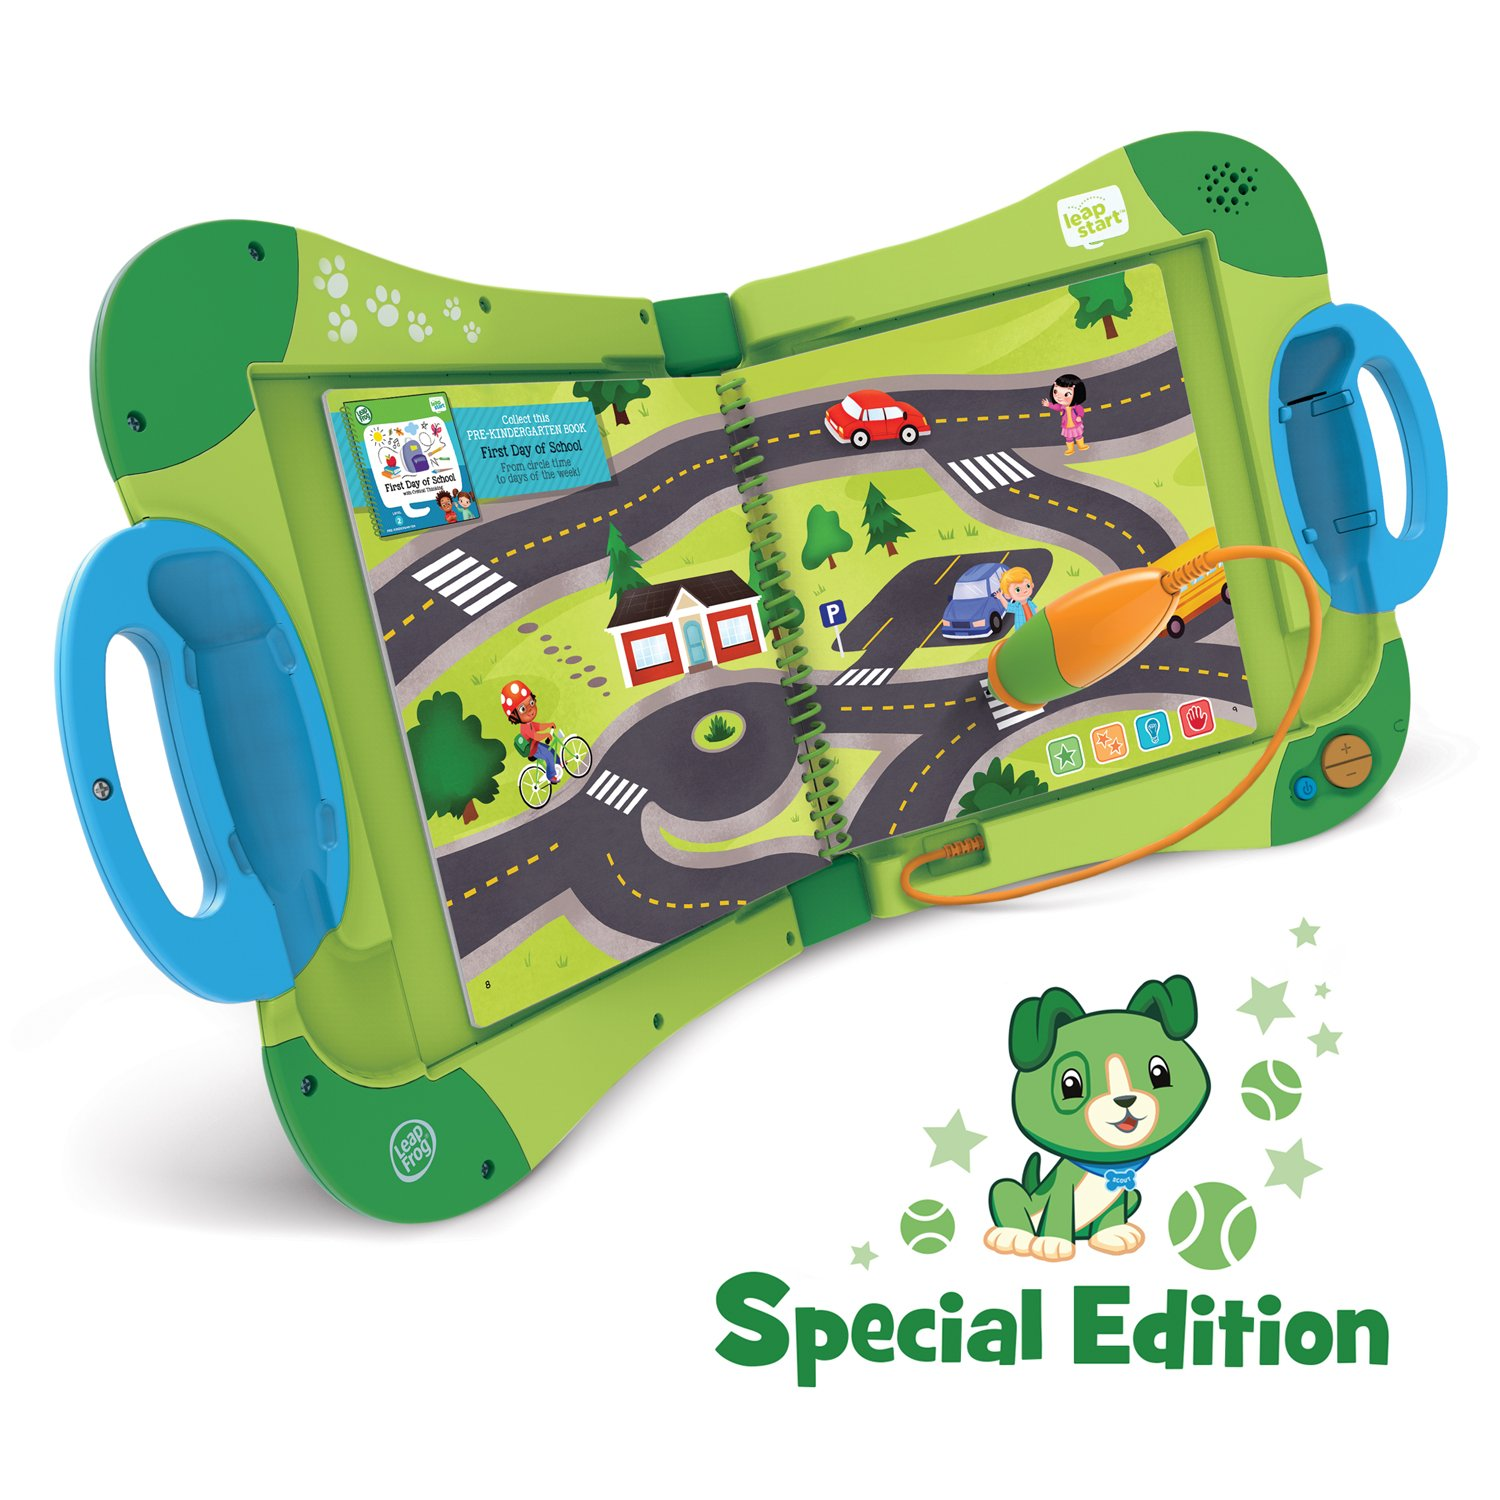 LeapFrog Leapstart Interactive Learning System for Preschool and Pre-Kindergarten-My Pal Scout Online Special Edition